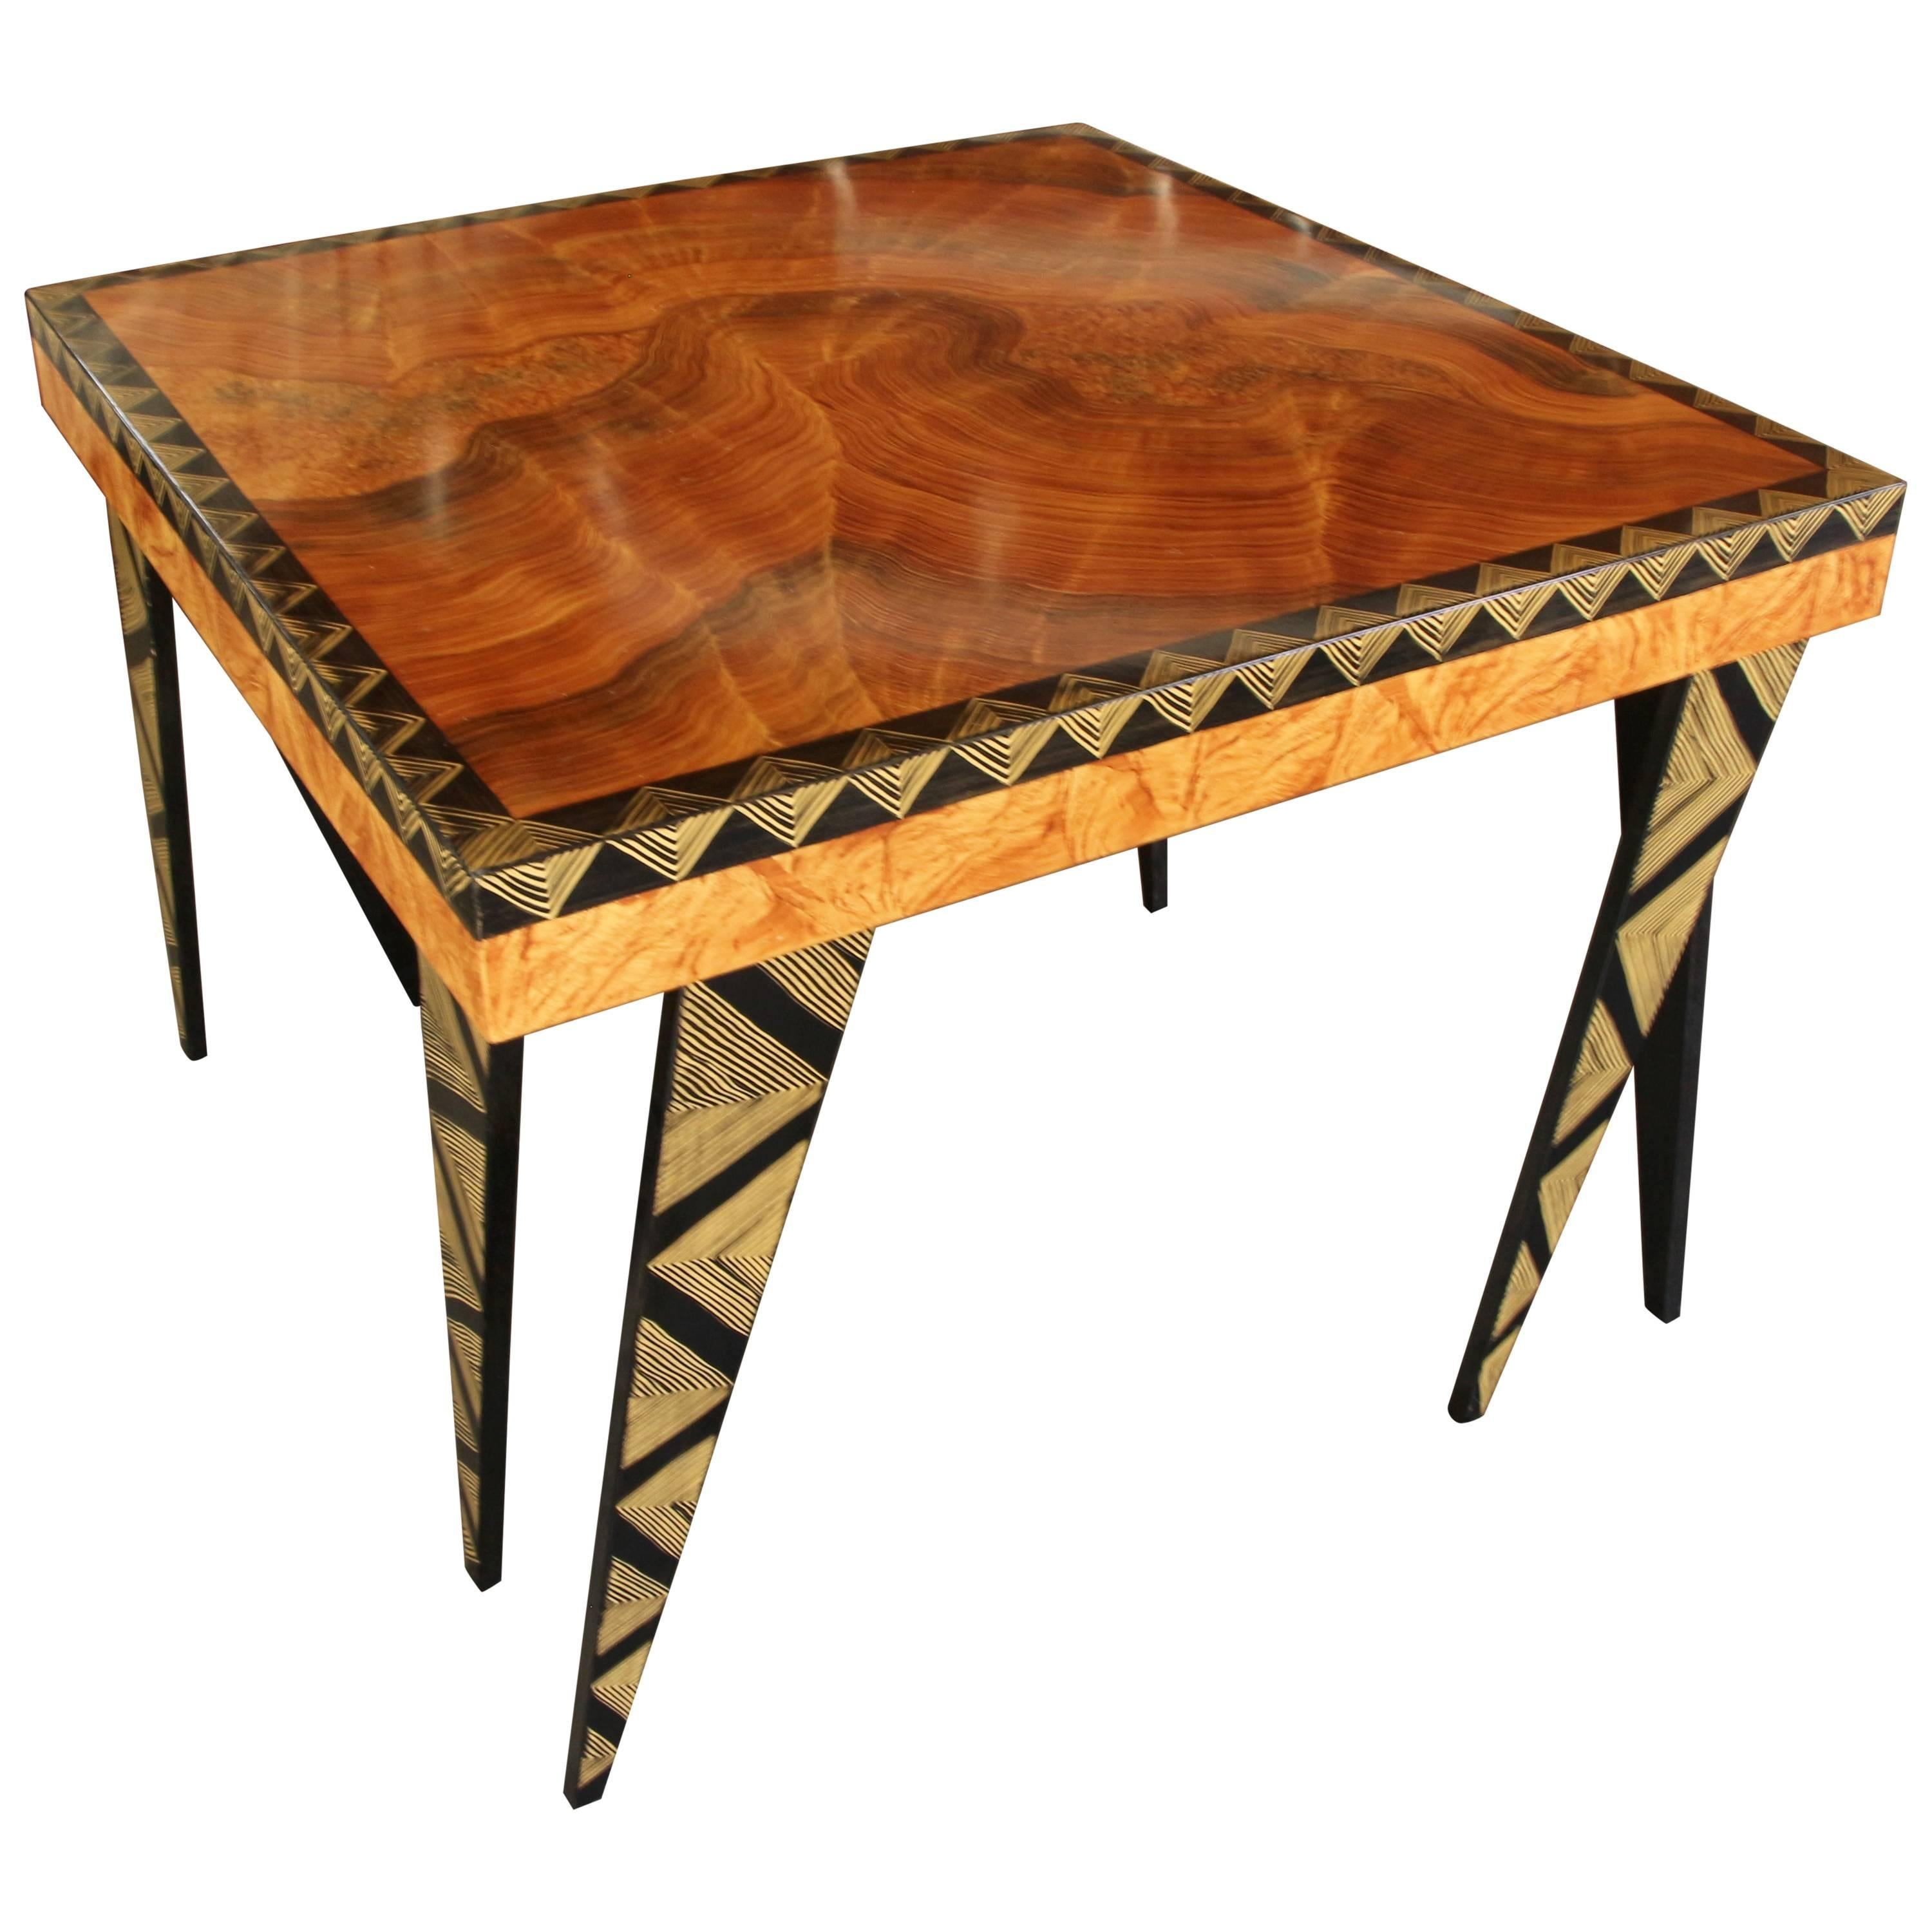 Whimsical hand painted table by grant noren for sale at 1stdibs